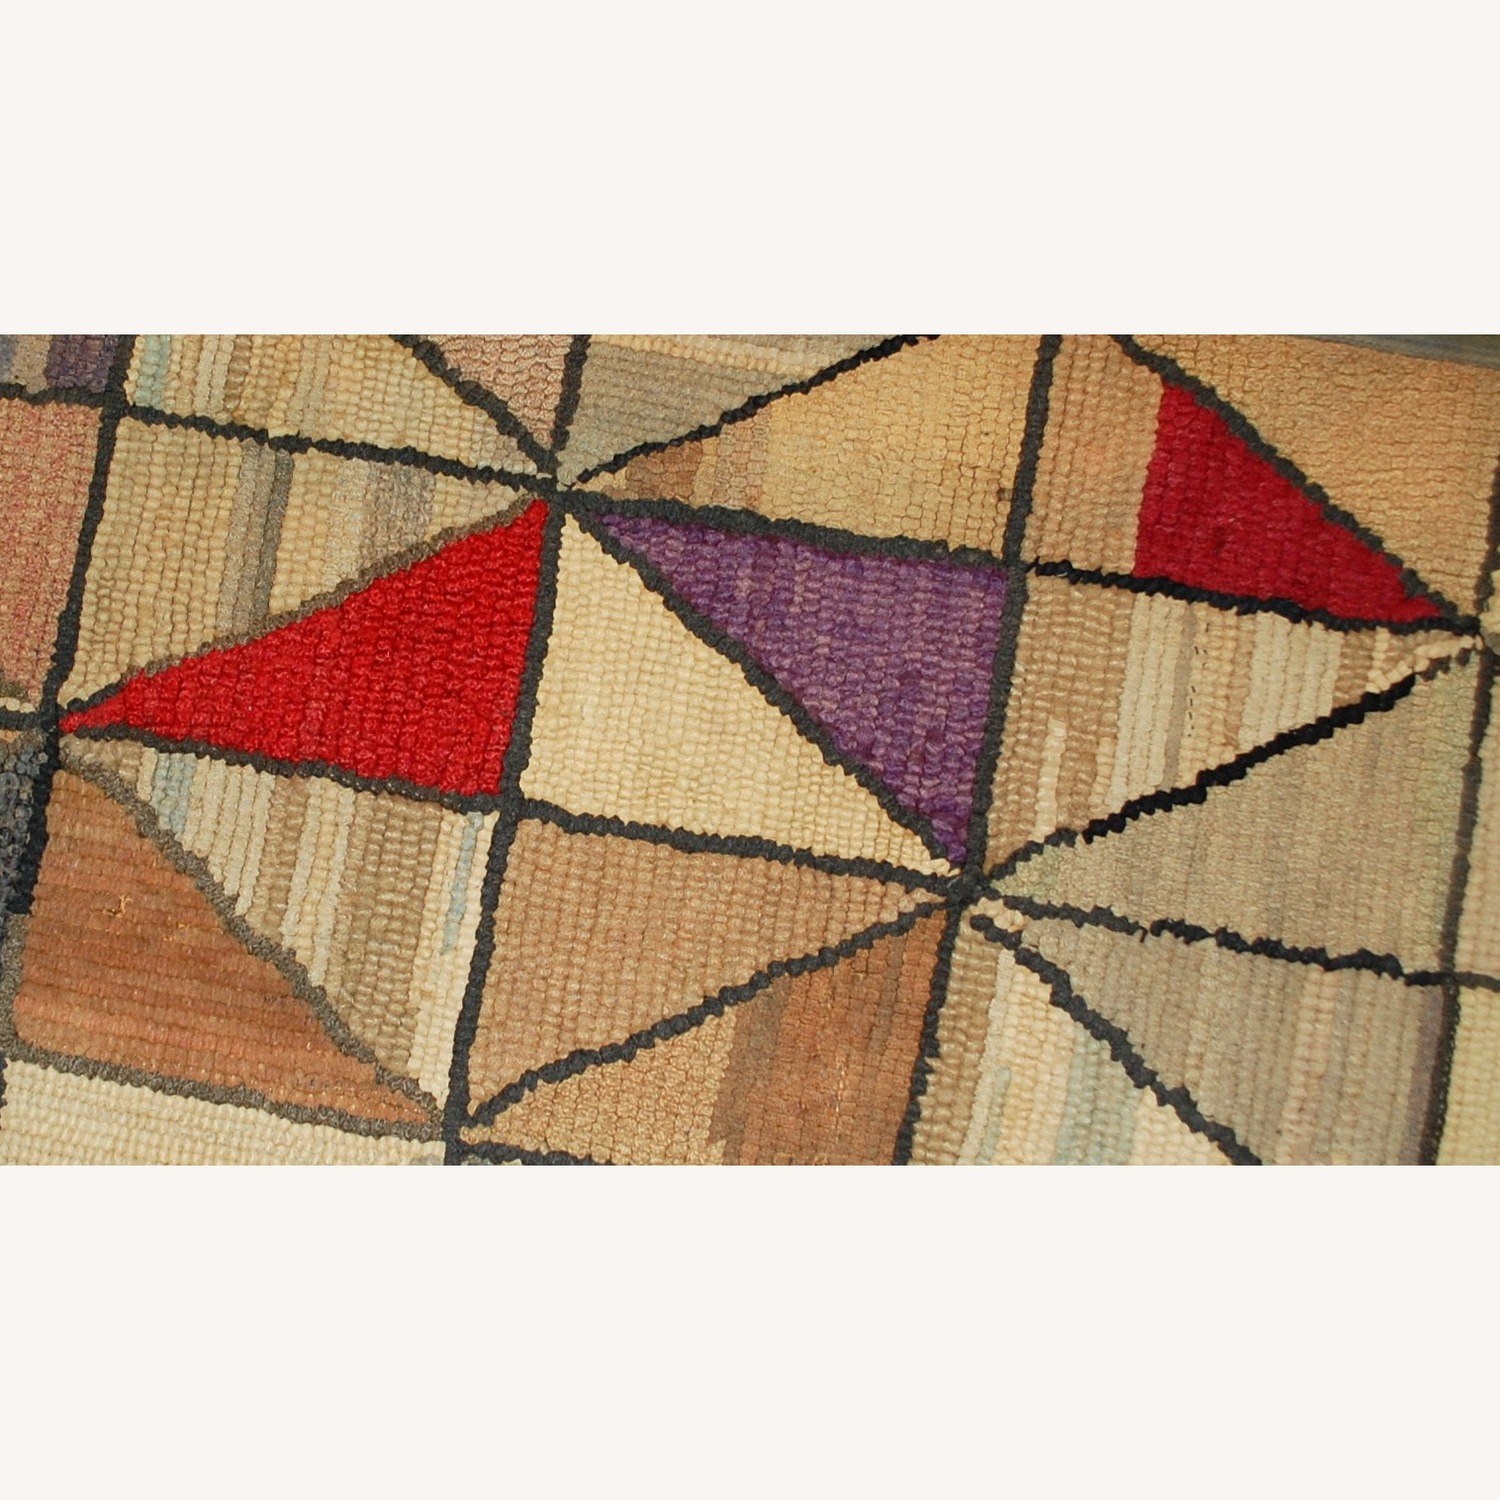 Handmade Antique Square American Hooked Rug - image-3